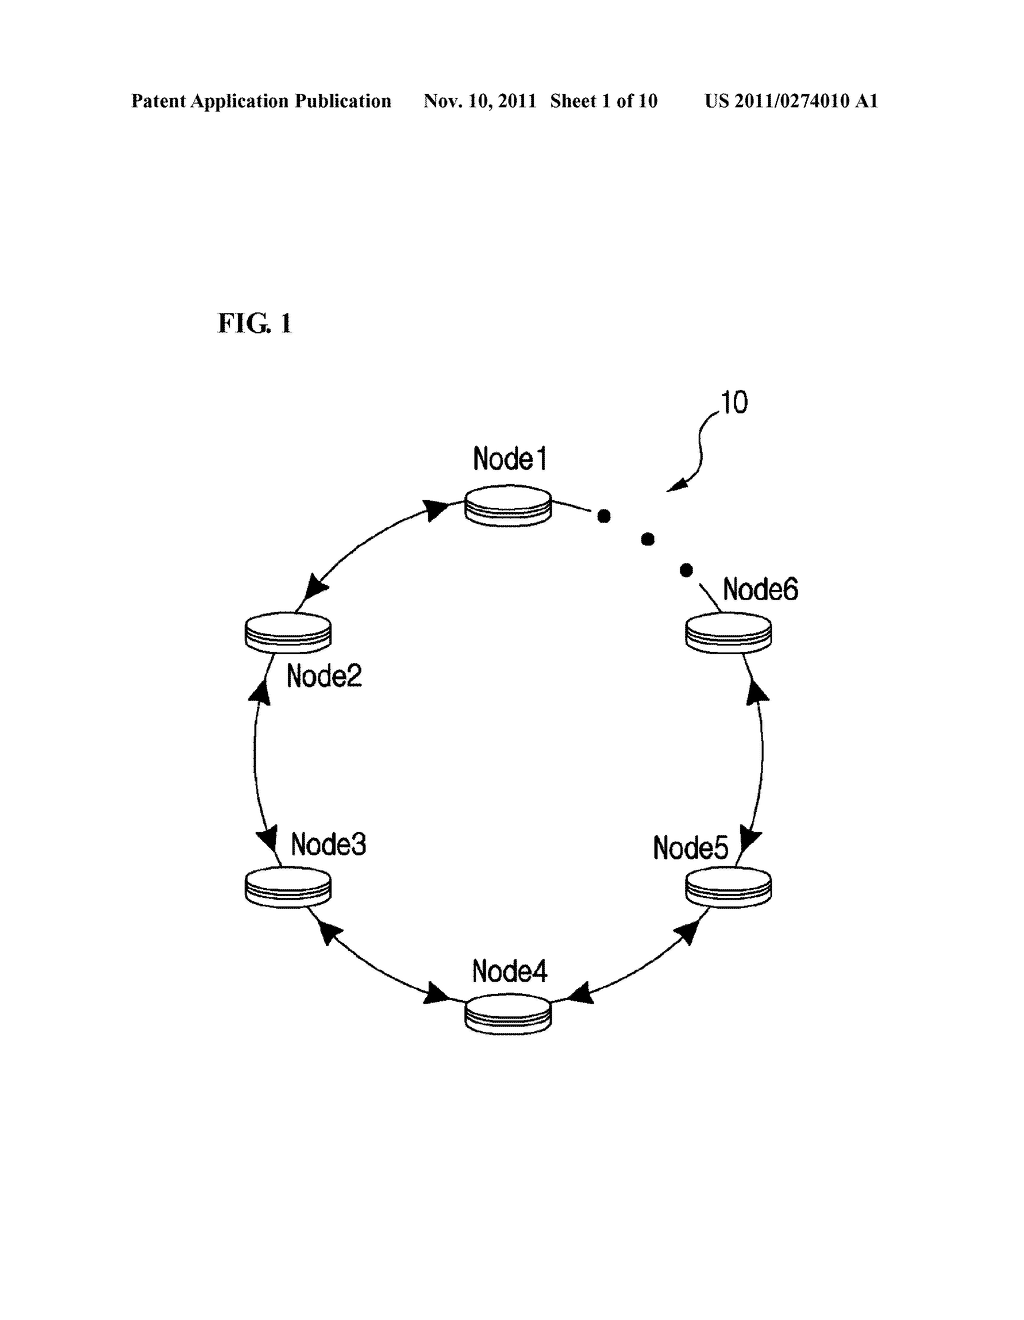 method for electing ring manager of ring topology network  and    method for electing ring manager of ring topology network  and node   diagram  schematic  and image